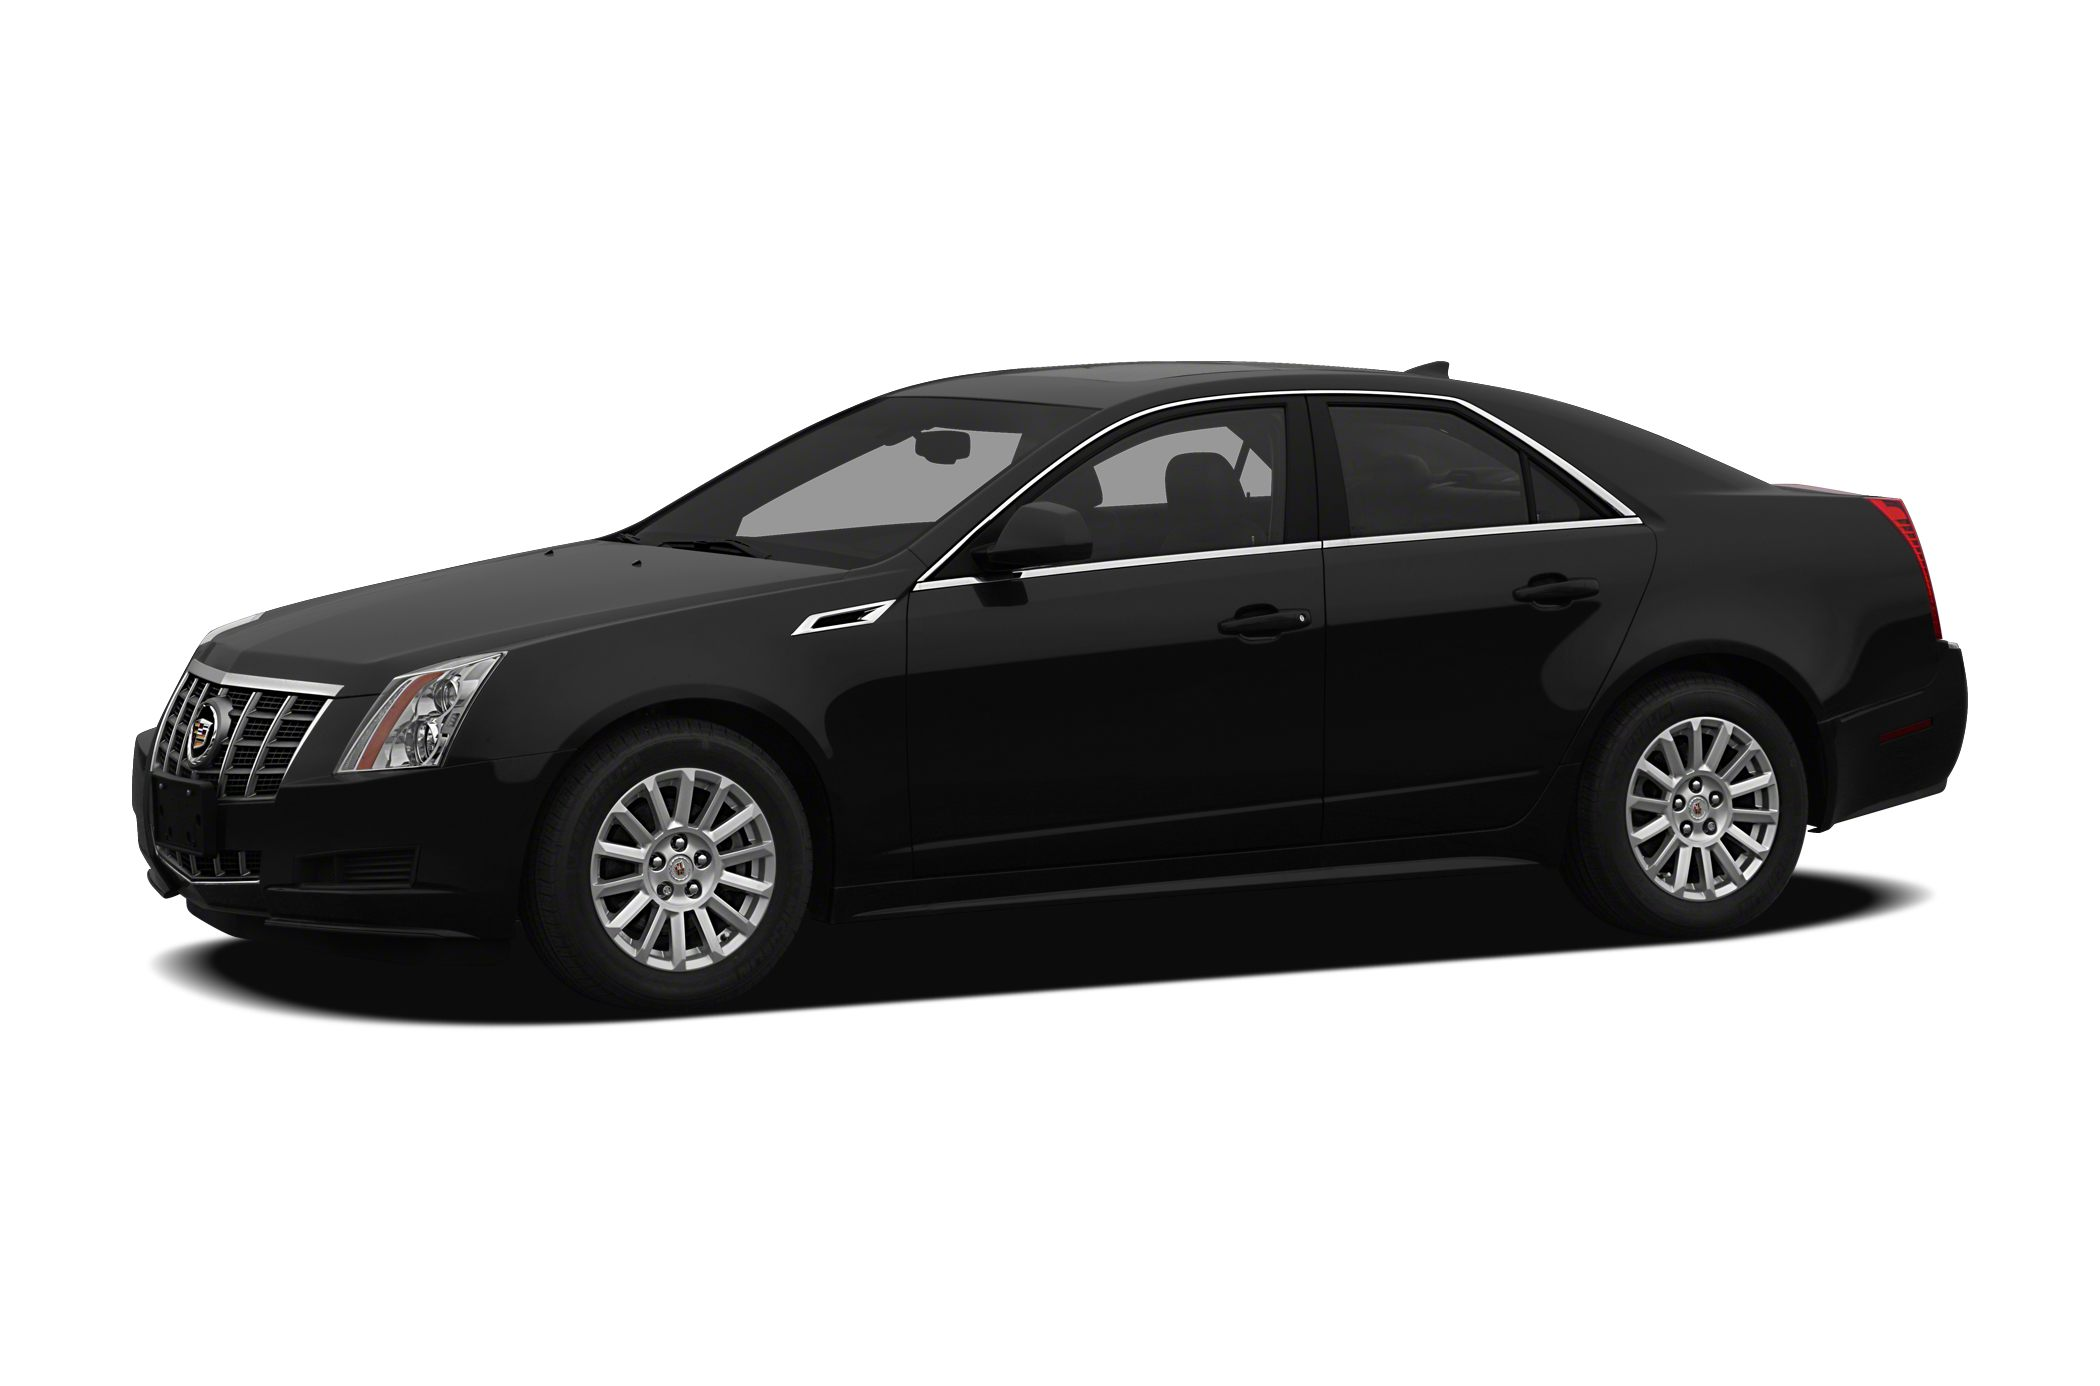 2012 Cadillac CTS